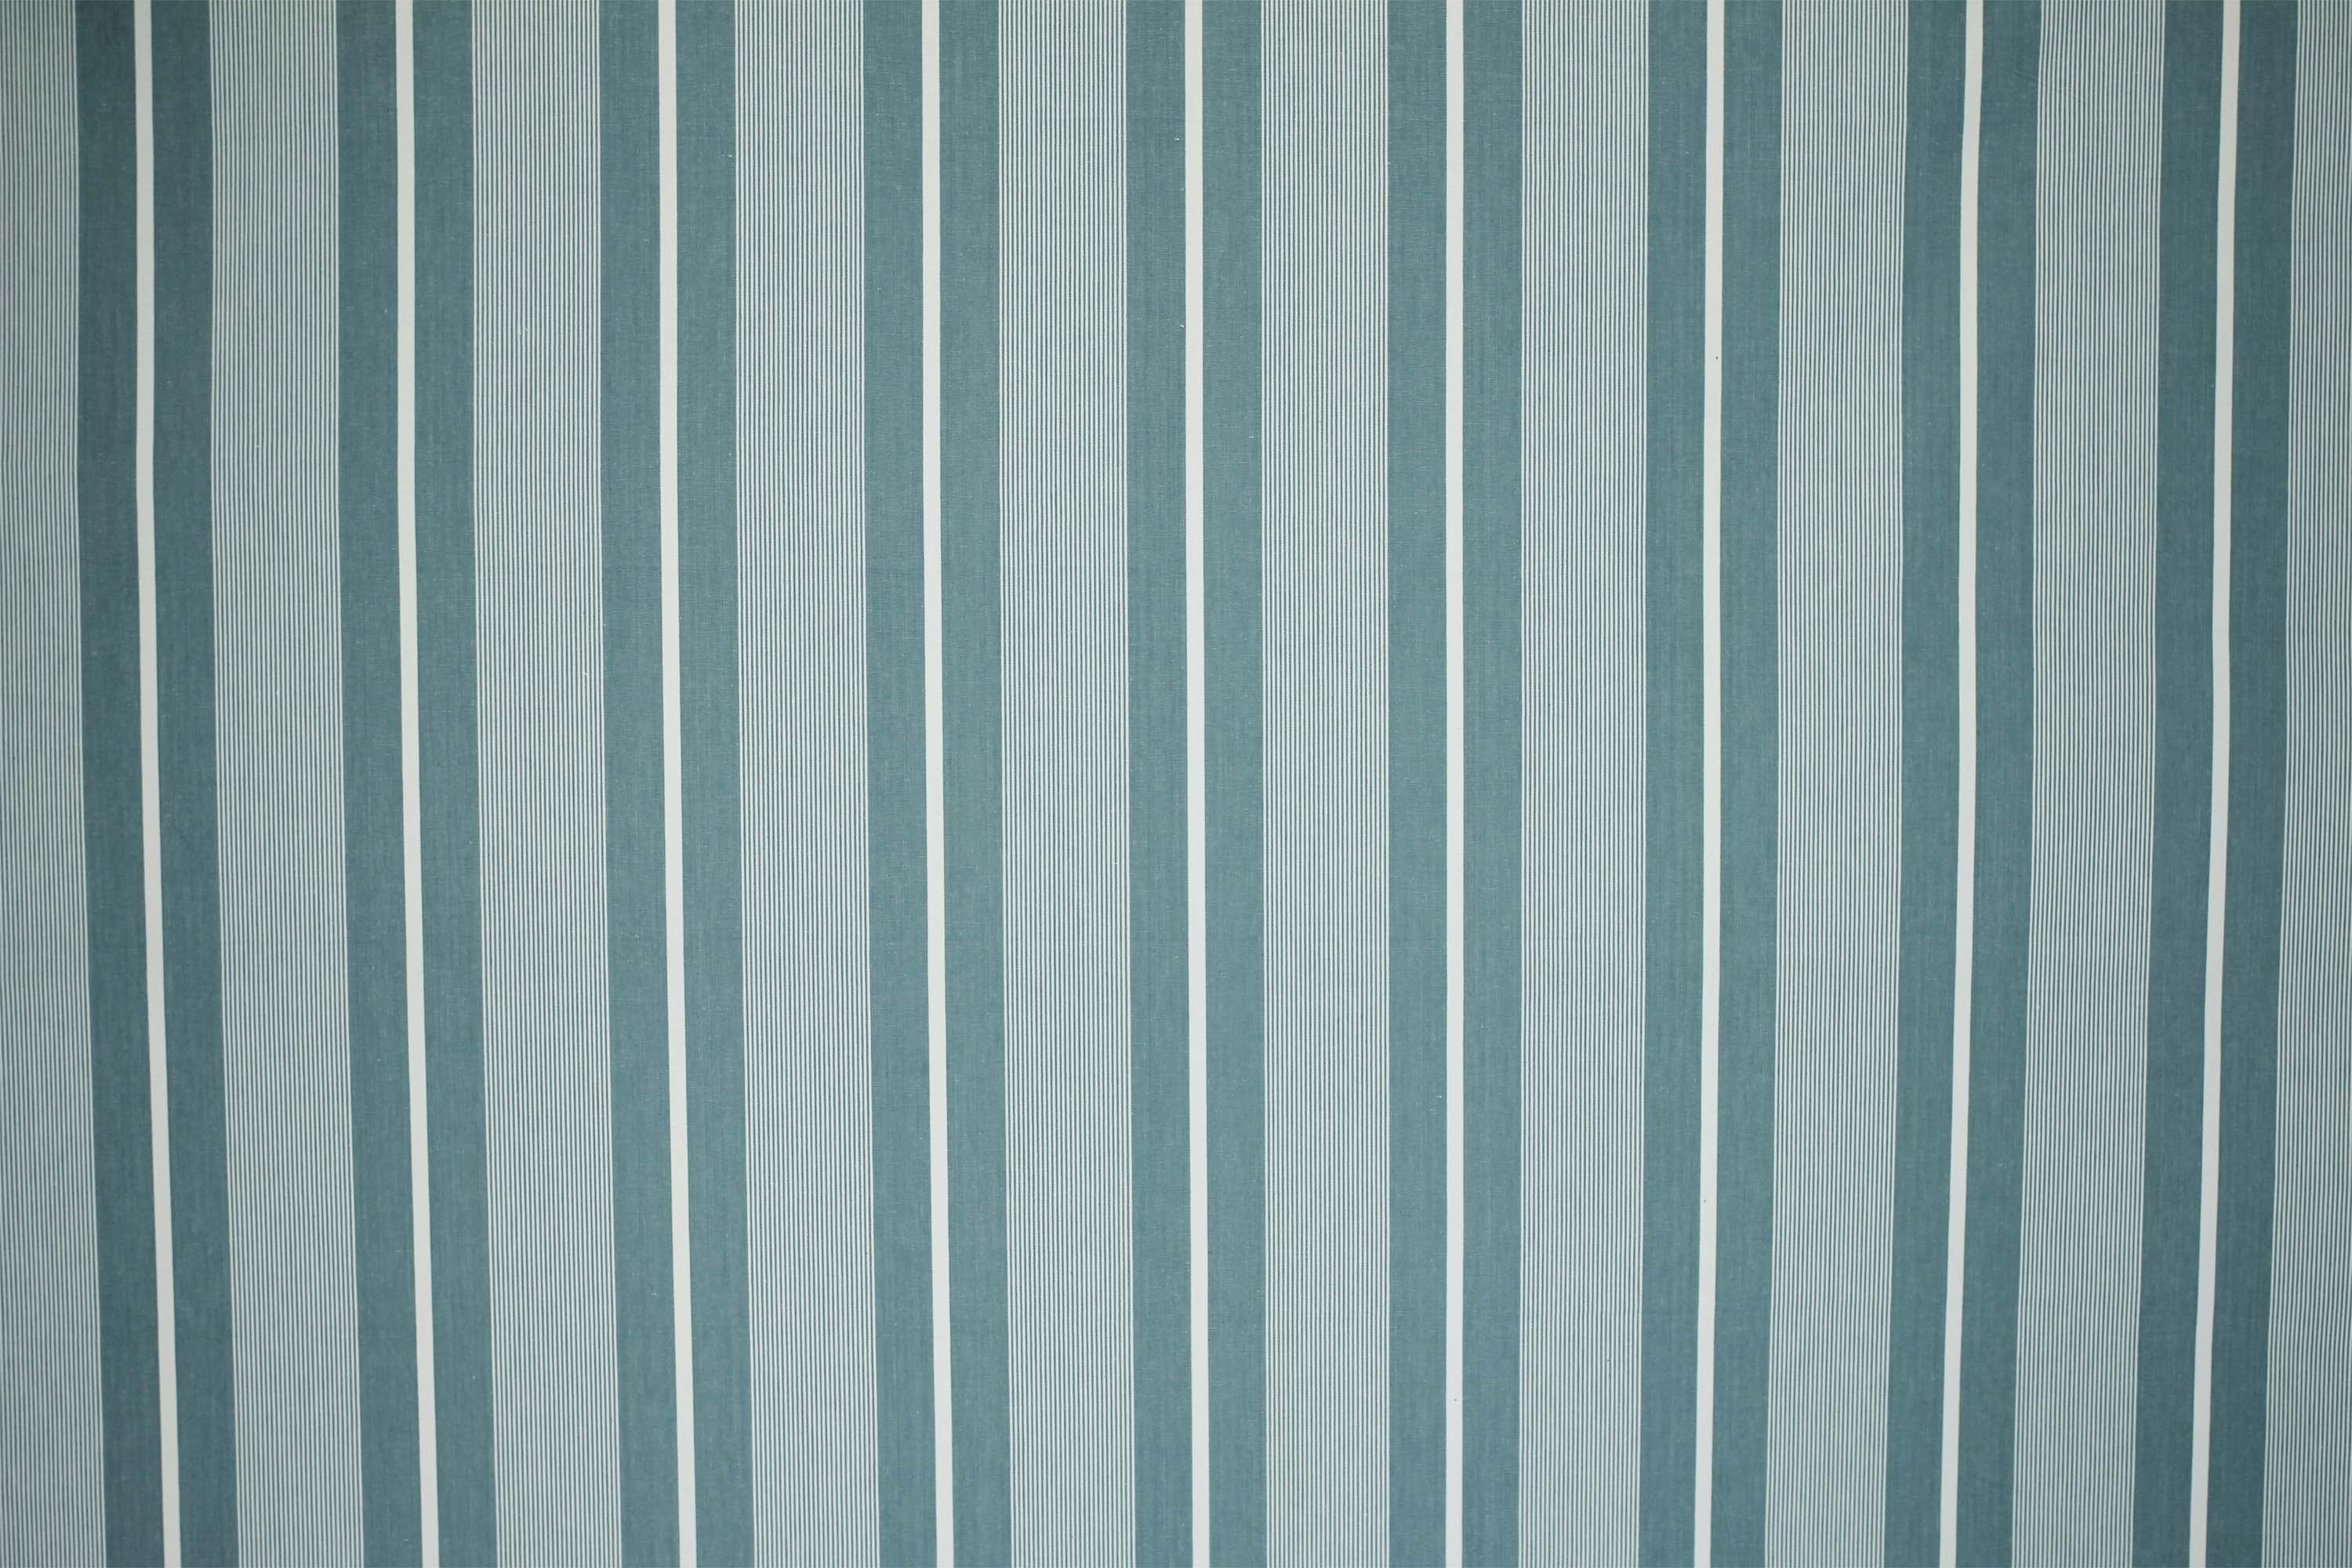 Pale Teal Striped Fabrics | Stripe Cotton Fabrics | Striped Curtain Fabrics | Upholstery Fabrics  Sevens Teal Stripes